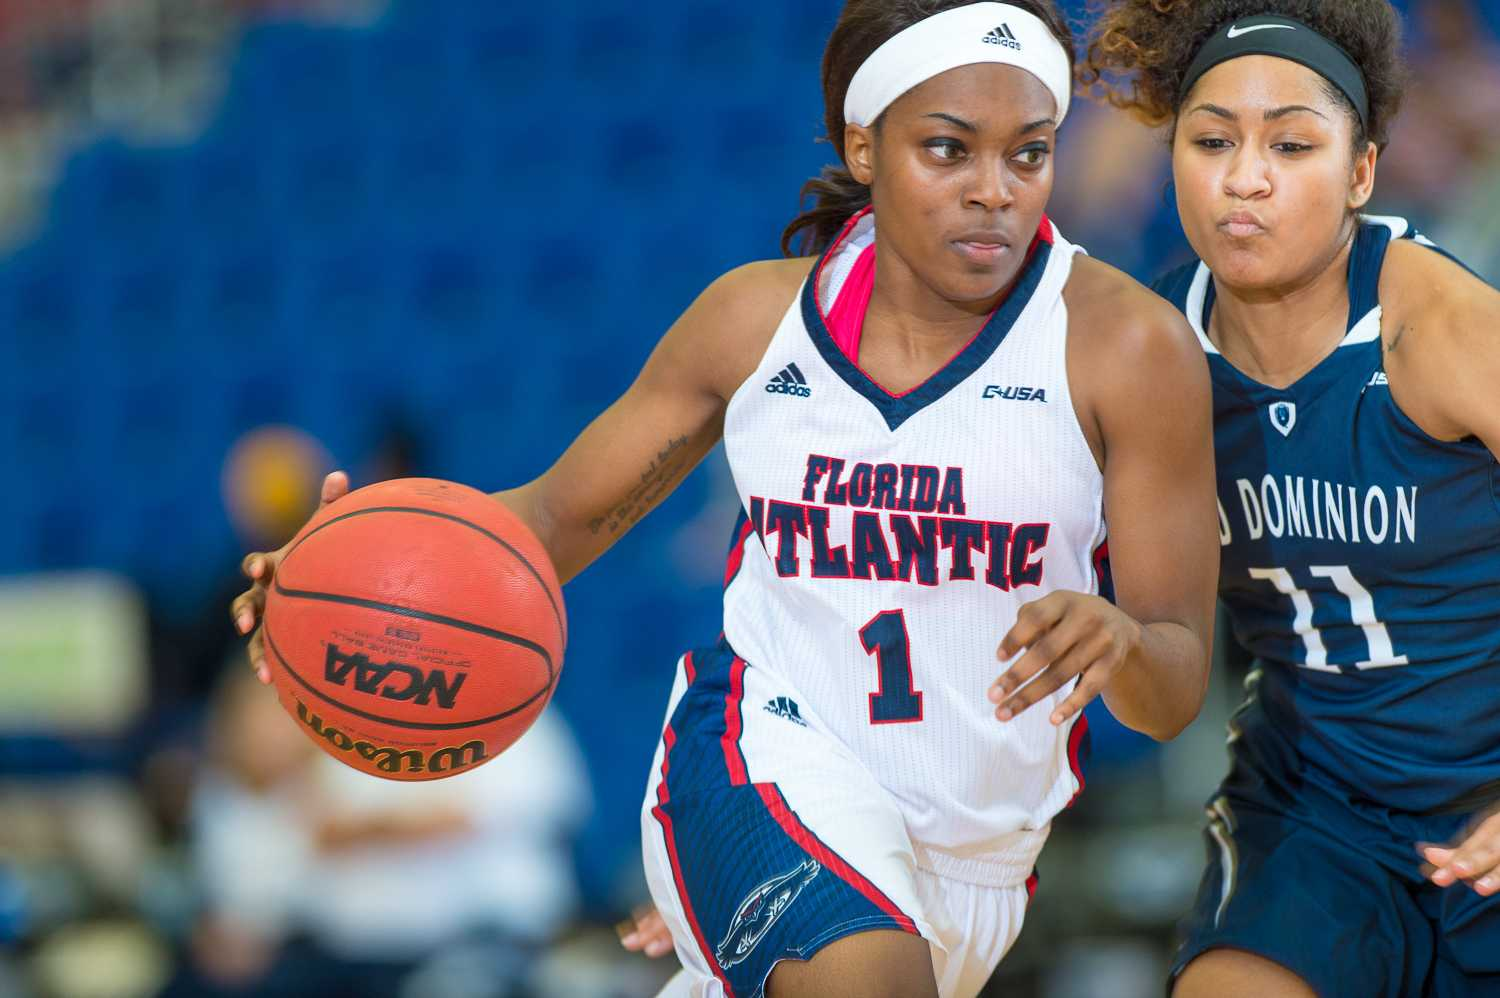 Aaliyah Dotson (1) of FAU drives to the paint around Ashley Betz-White (11) of ODU.